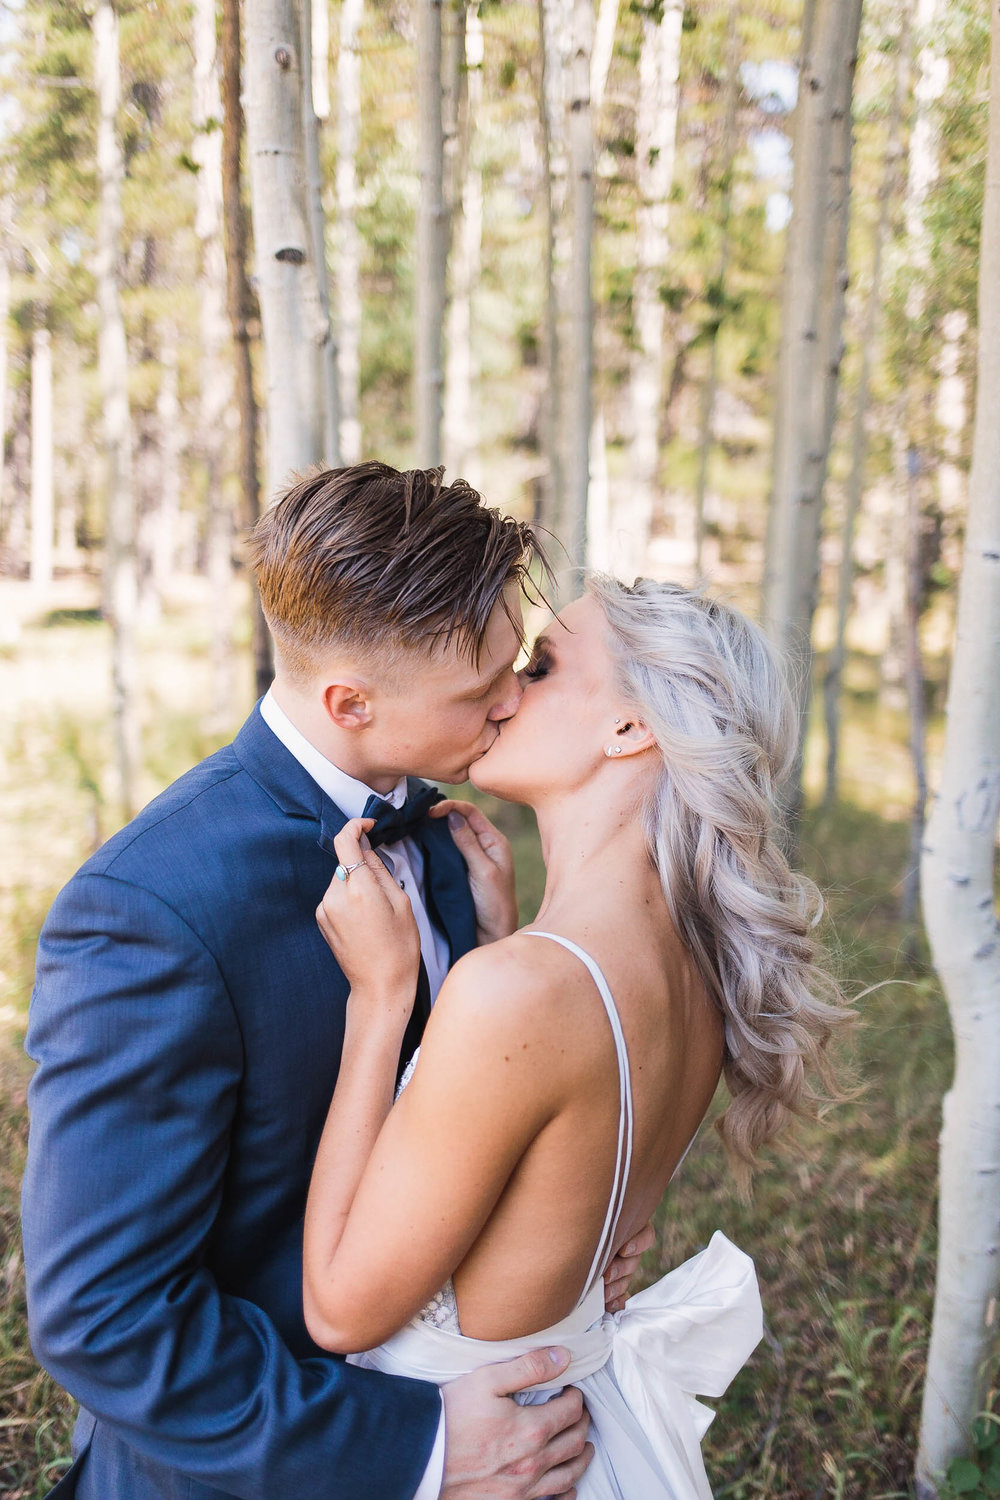 Bride and groom intimate wedding day portraits Casper Wyoming